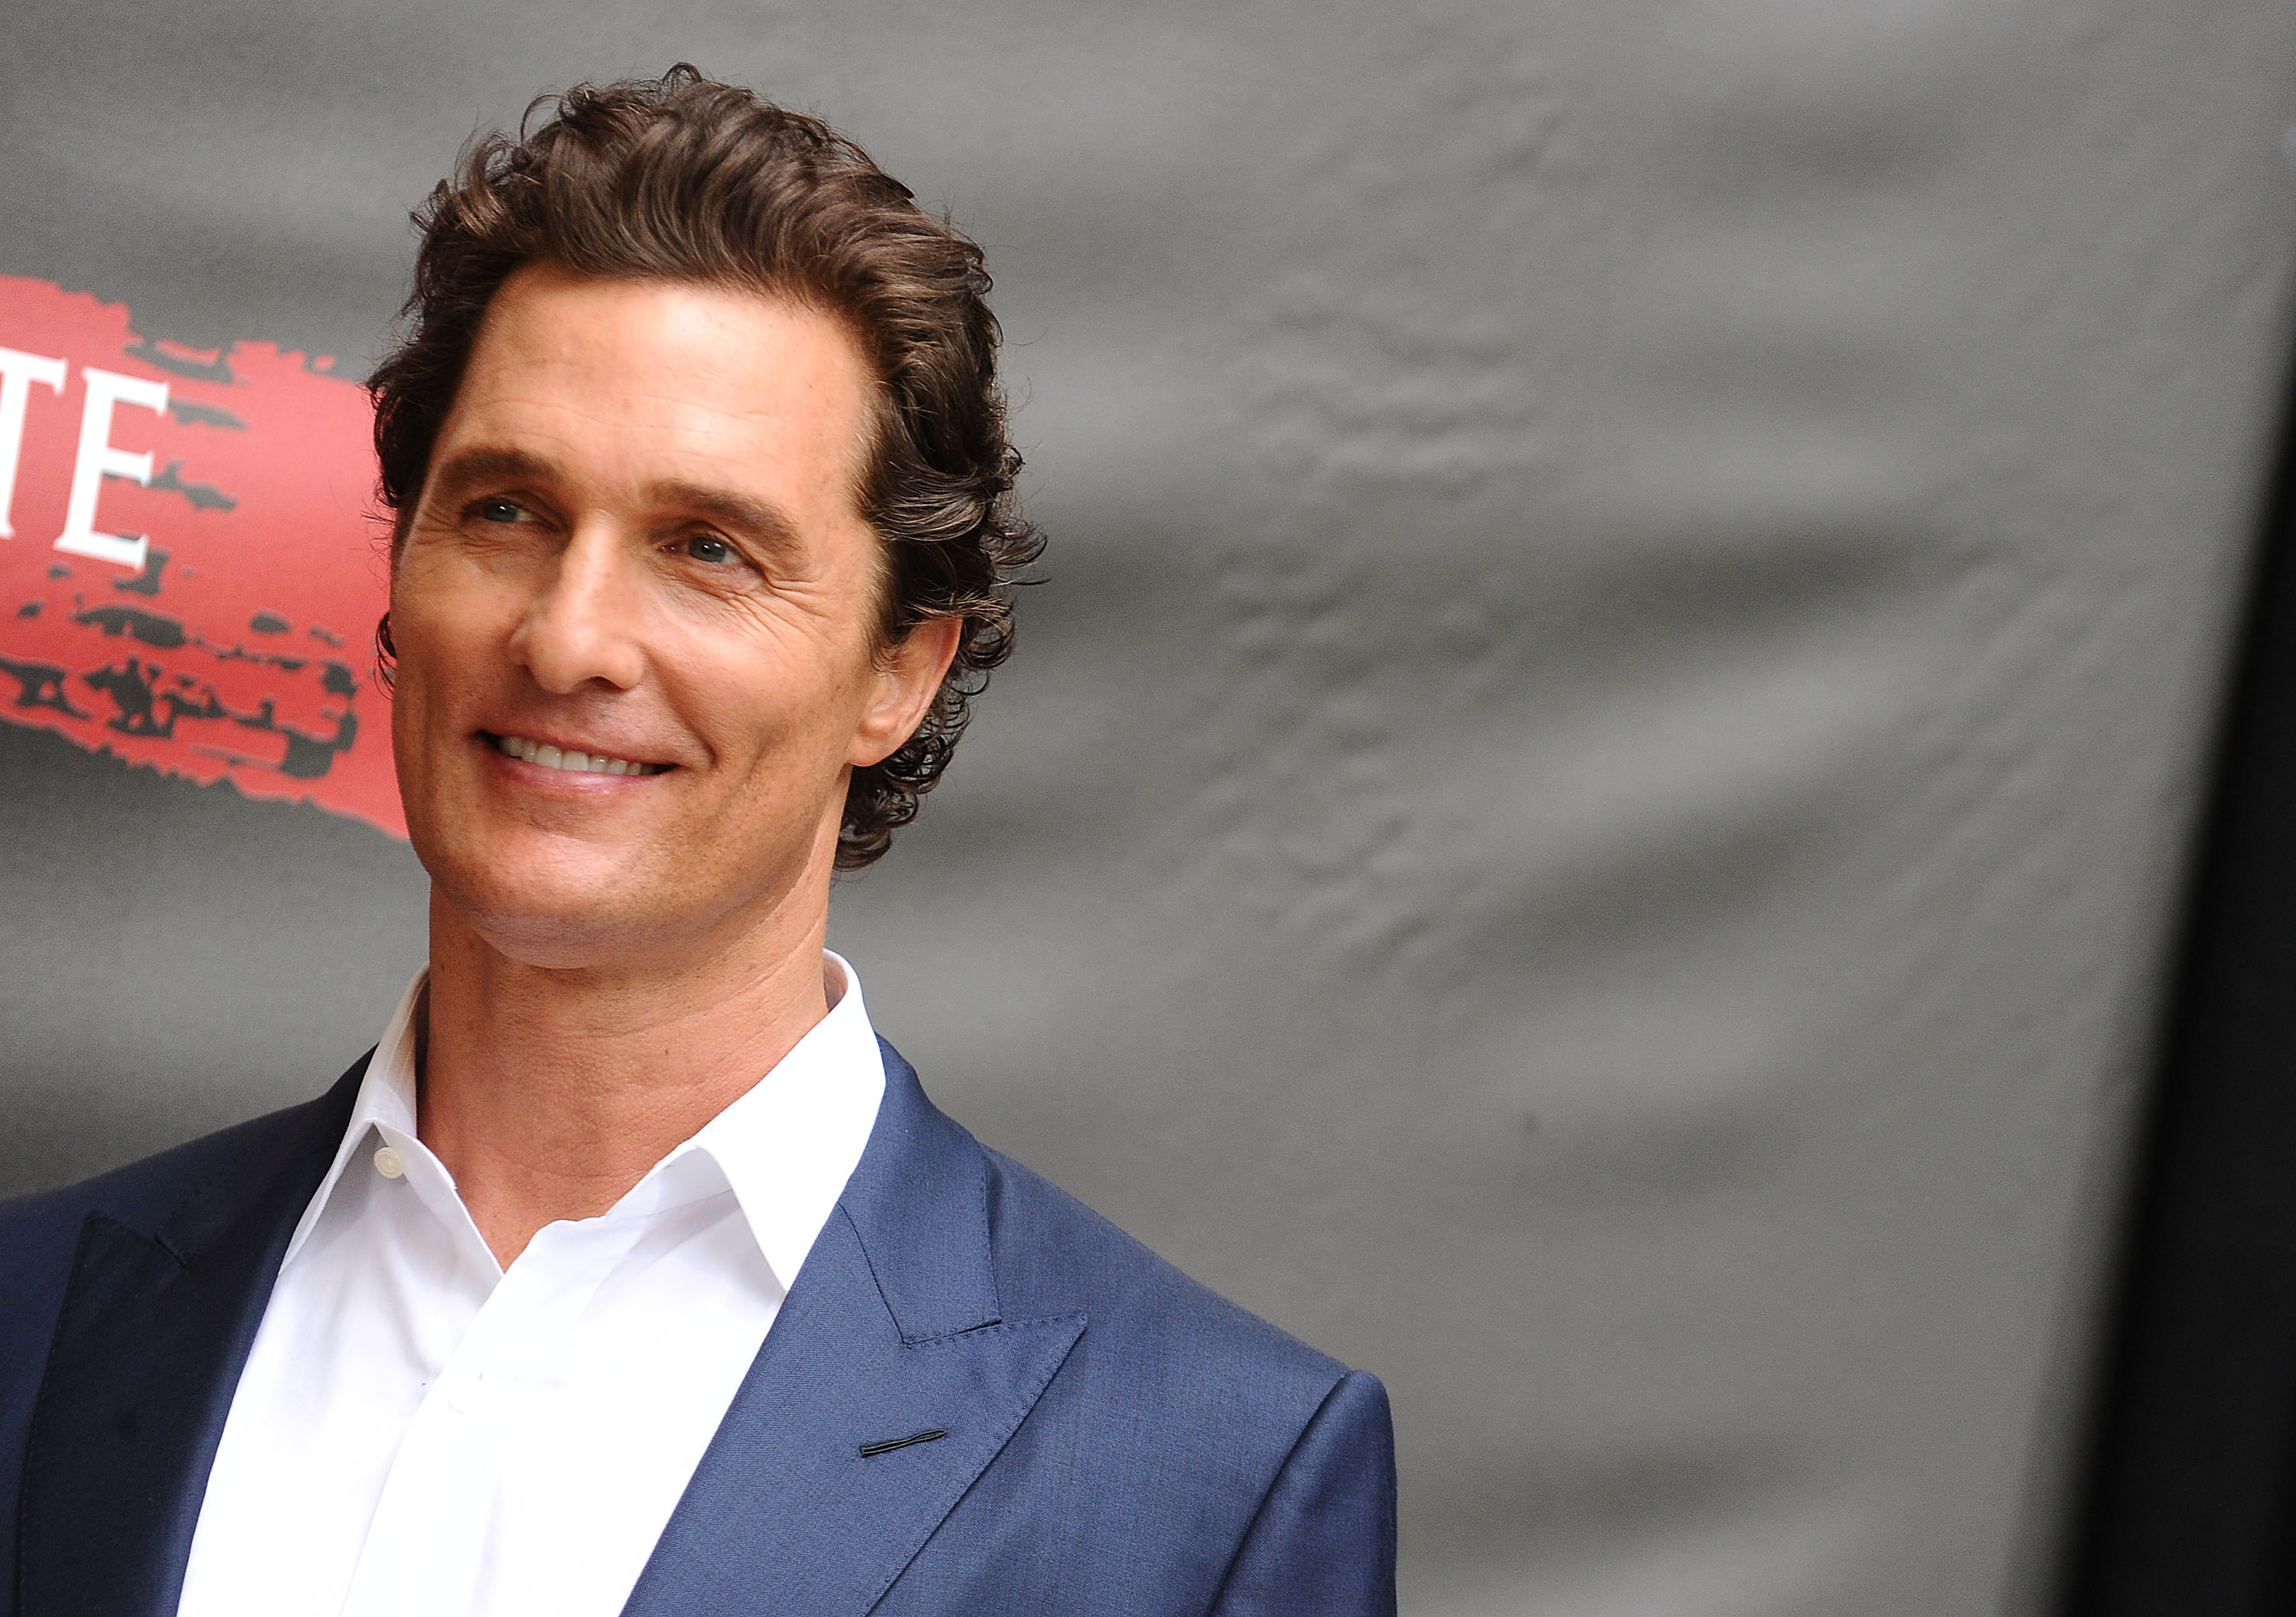 Actor Matthew McConaughey attends a photo call for Free State of Jones at Four Seasons Hotel Los Angeles at Beverly Hills, in Los Angeles, on May 11, 2016